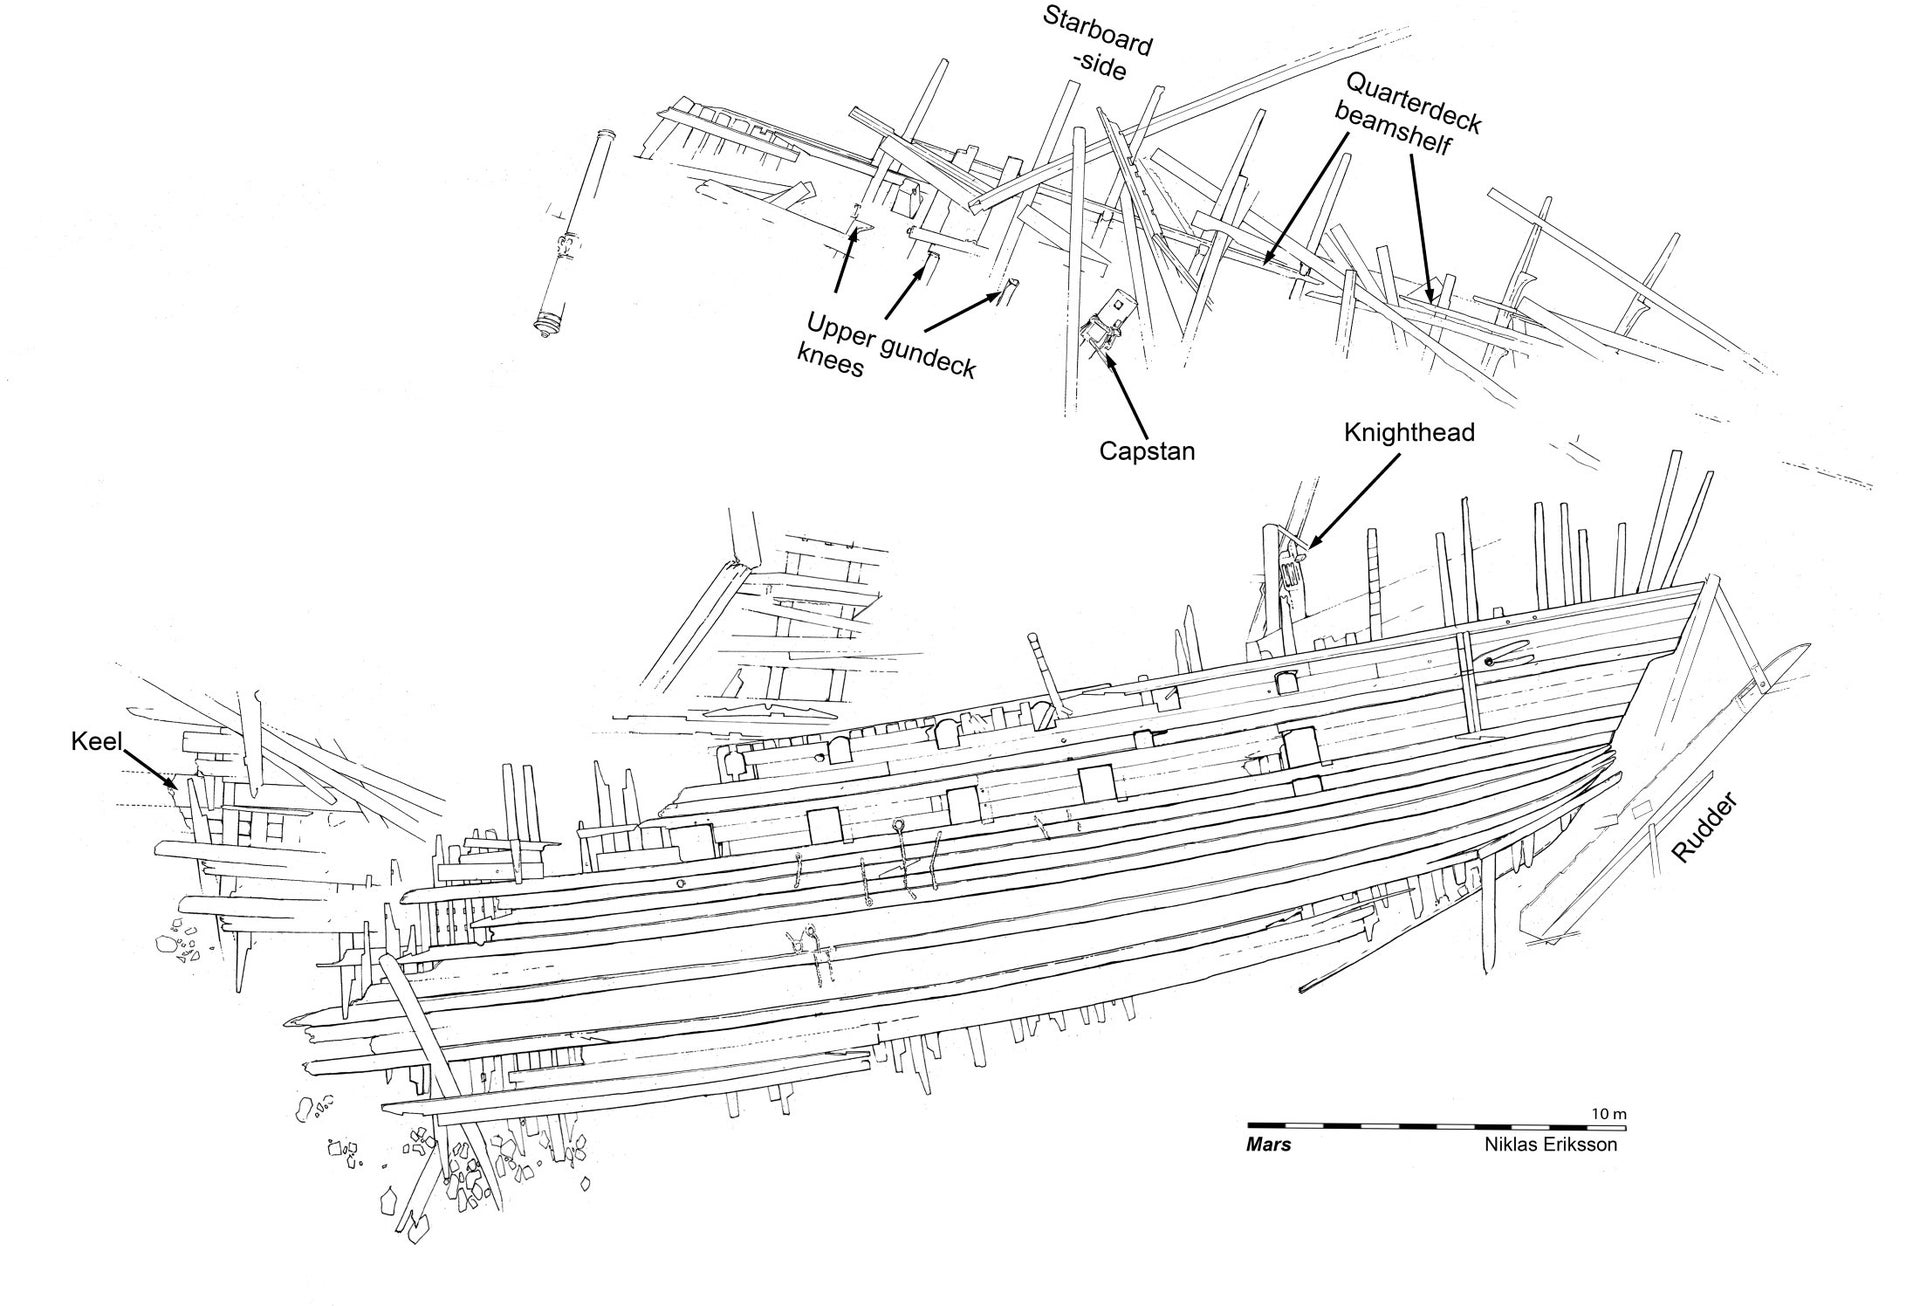 Preliminary site plan. The exploded bow is to the left and the remaining hull has broken into three more or less coherent parts. Showing a notch in the wale for the bracket that supported the channel, chains from the shrouds, and the foremost toptimber from the sterncastle